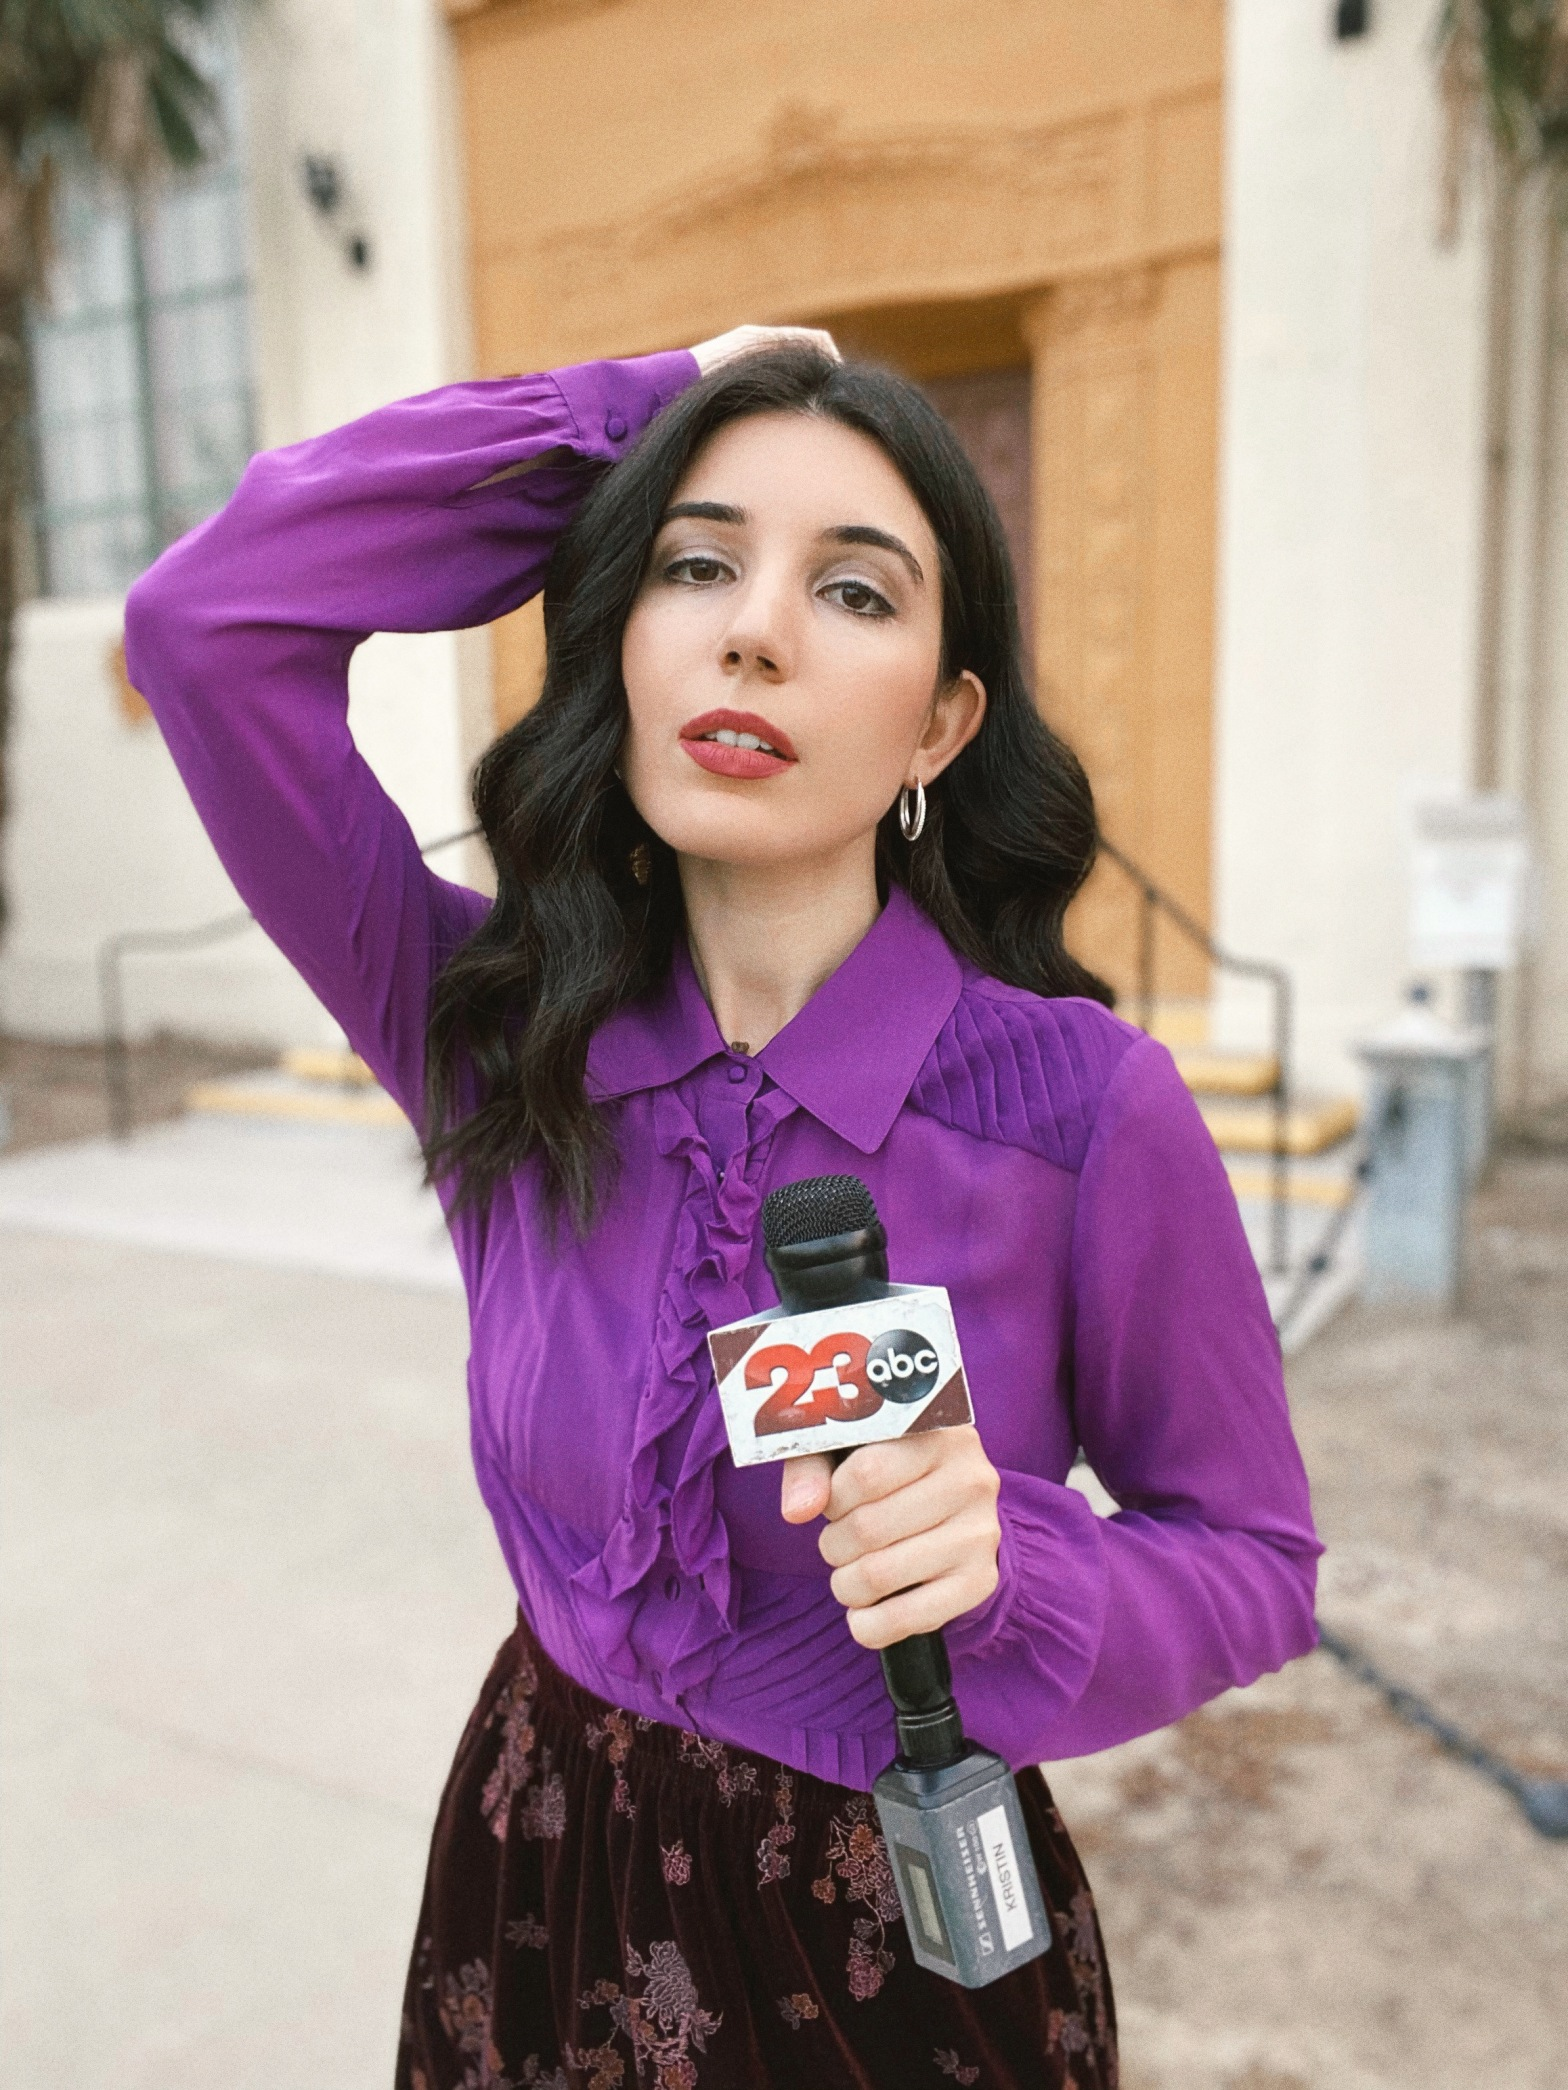 Edwardian top, purple top, ruffle top, velvet skirt, outfit of the day, ootd, vintage style, vintage top, silver earrings, silver hoop earrings, fashion blogger, on-camera reporter, style blog, outfit ideas, work outfits, work style, professional style